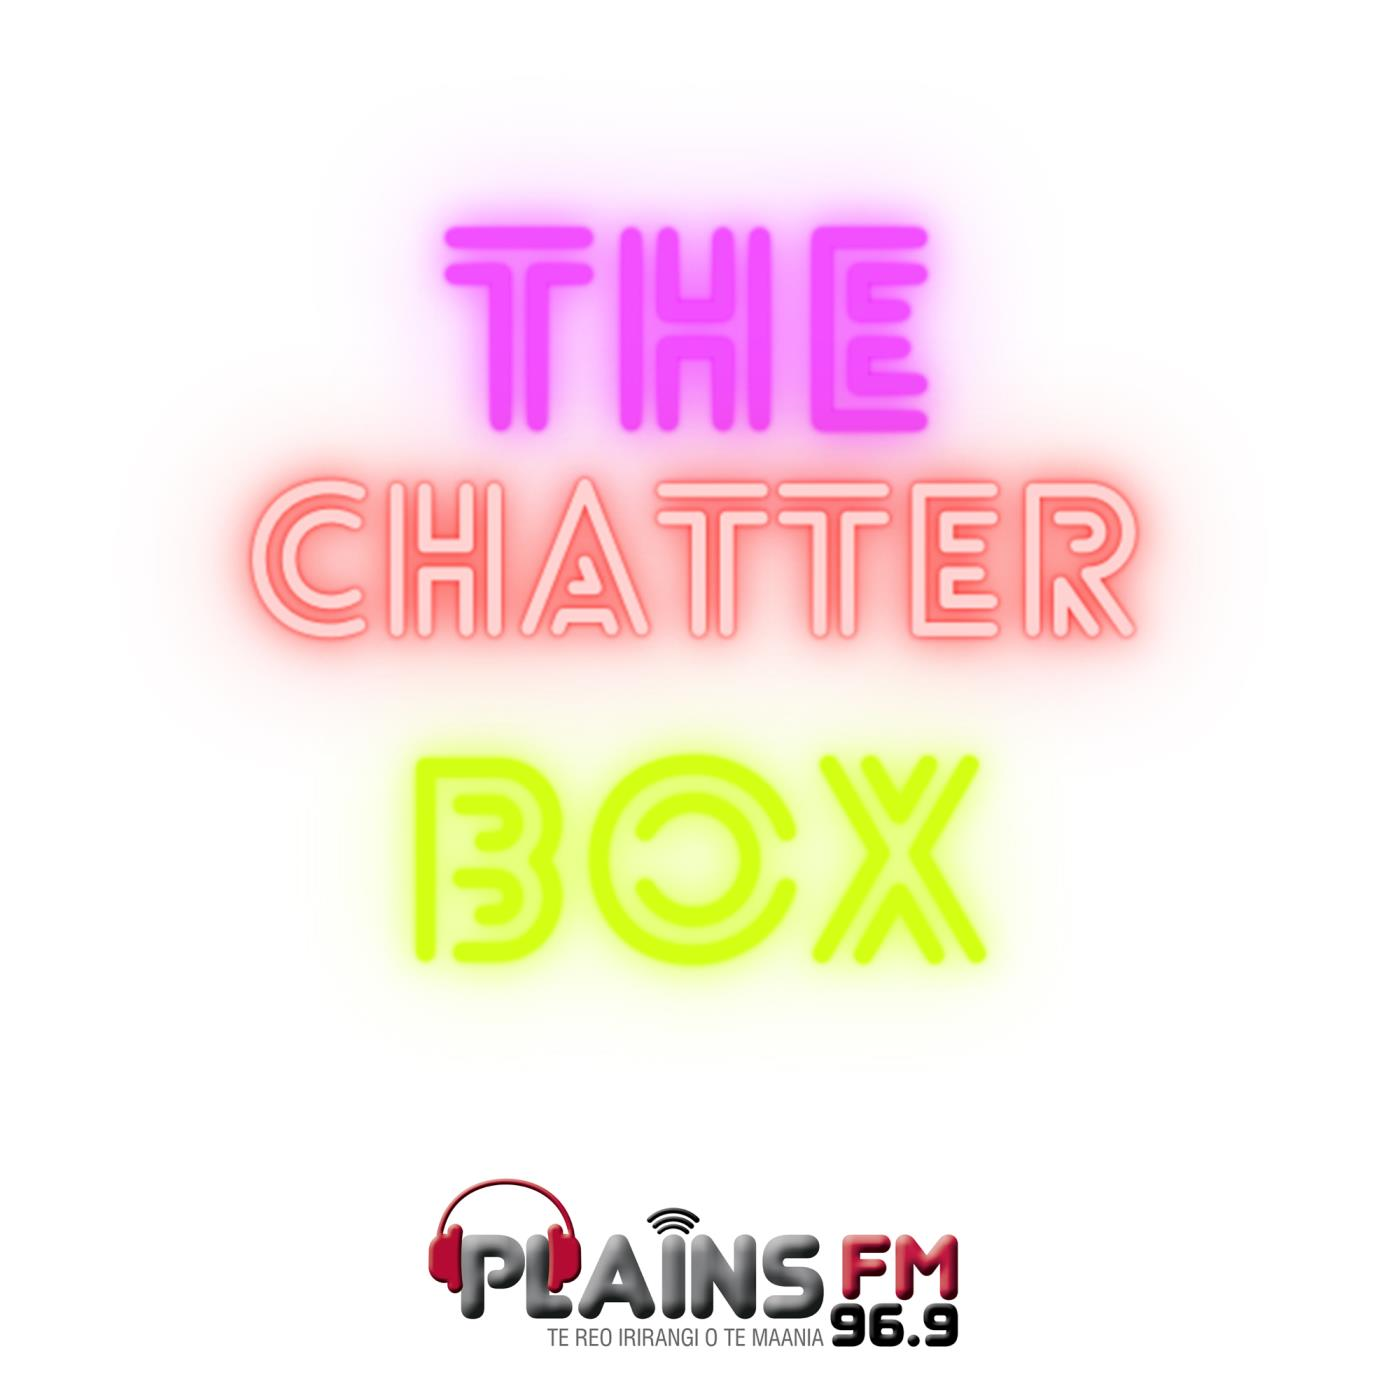 The Chatter Box hit the airways live for the first time!